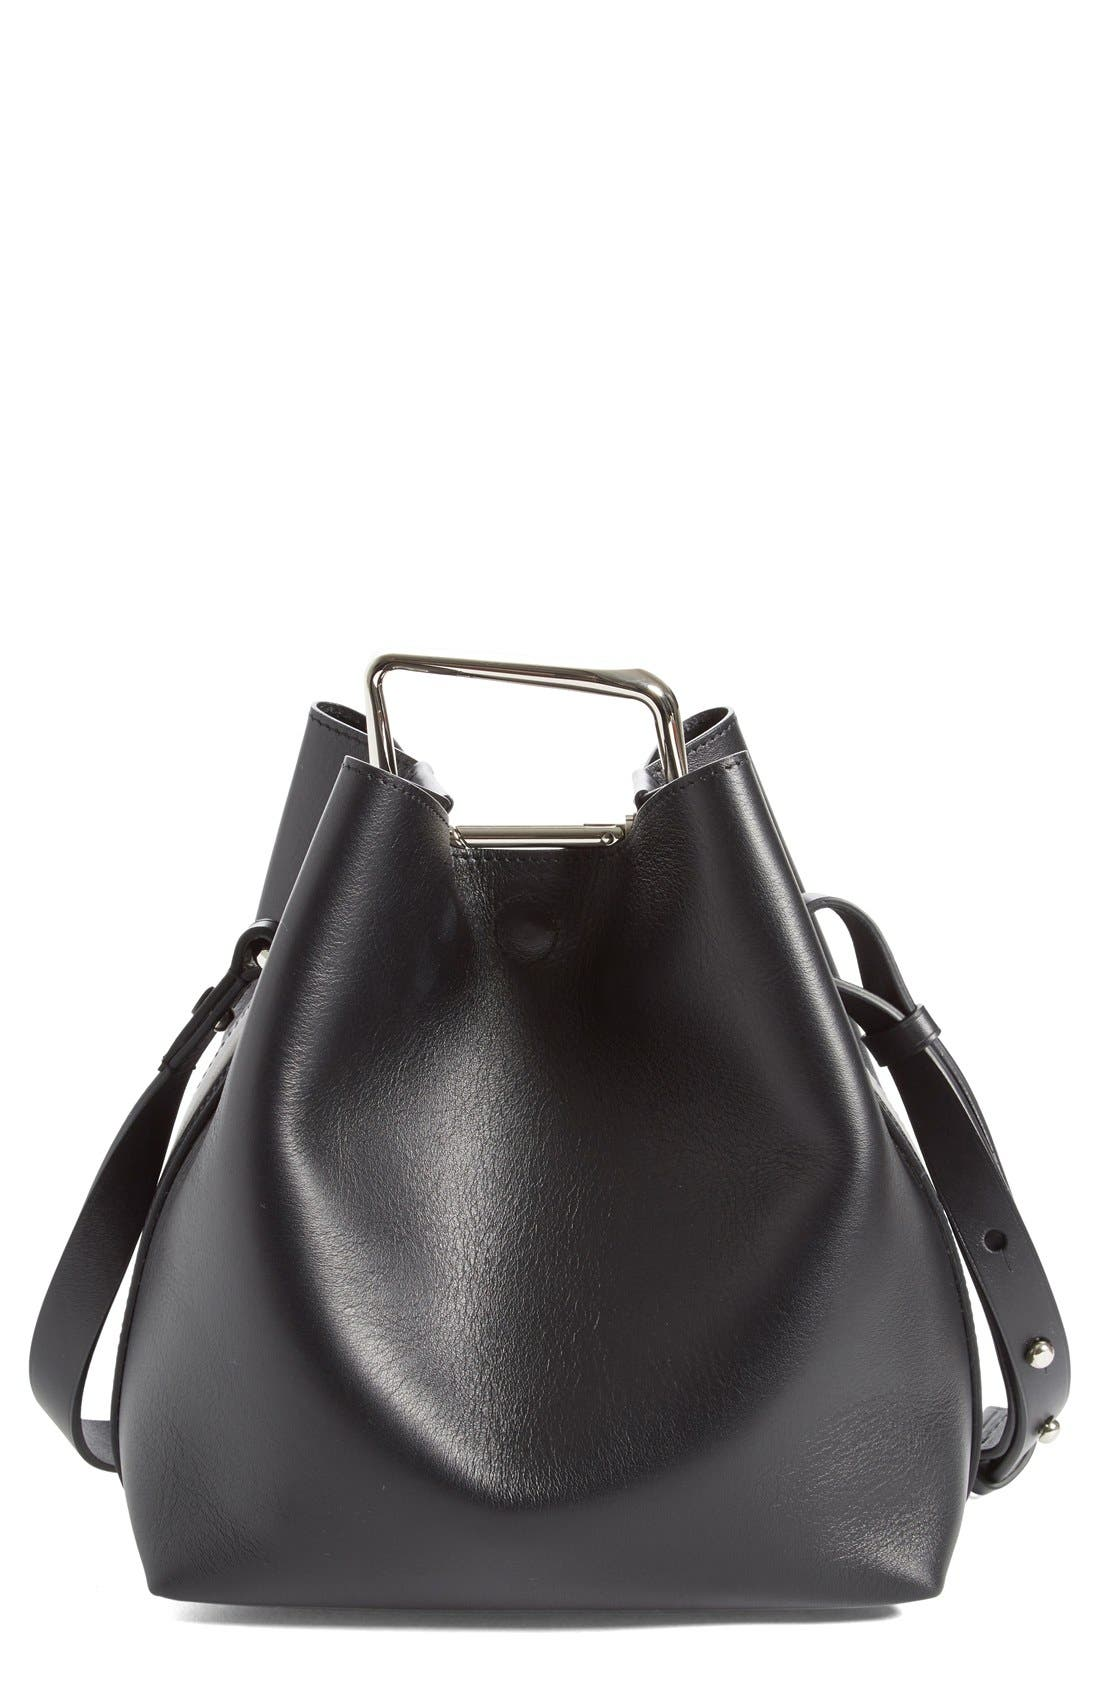 'Mini Quill' Leather Bucket Bag,                             Main thumbnail 1, color,                             011